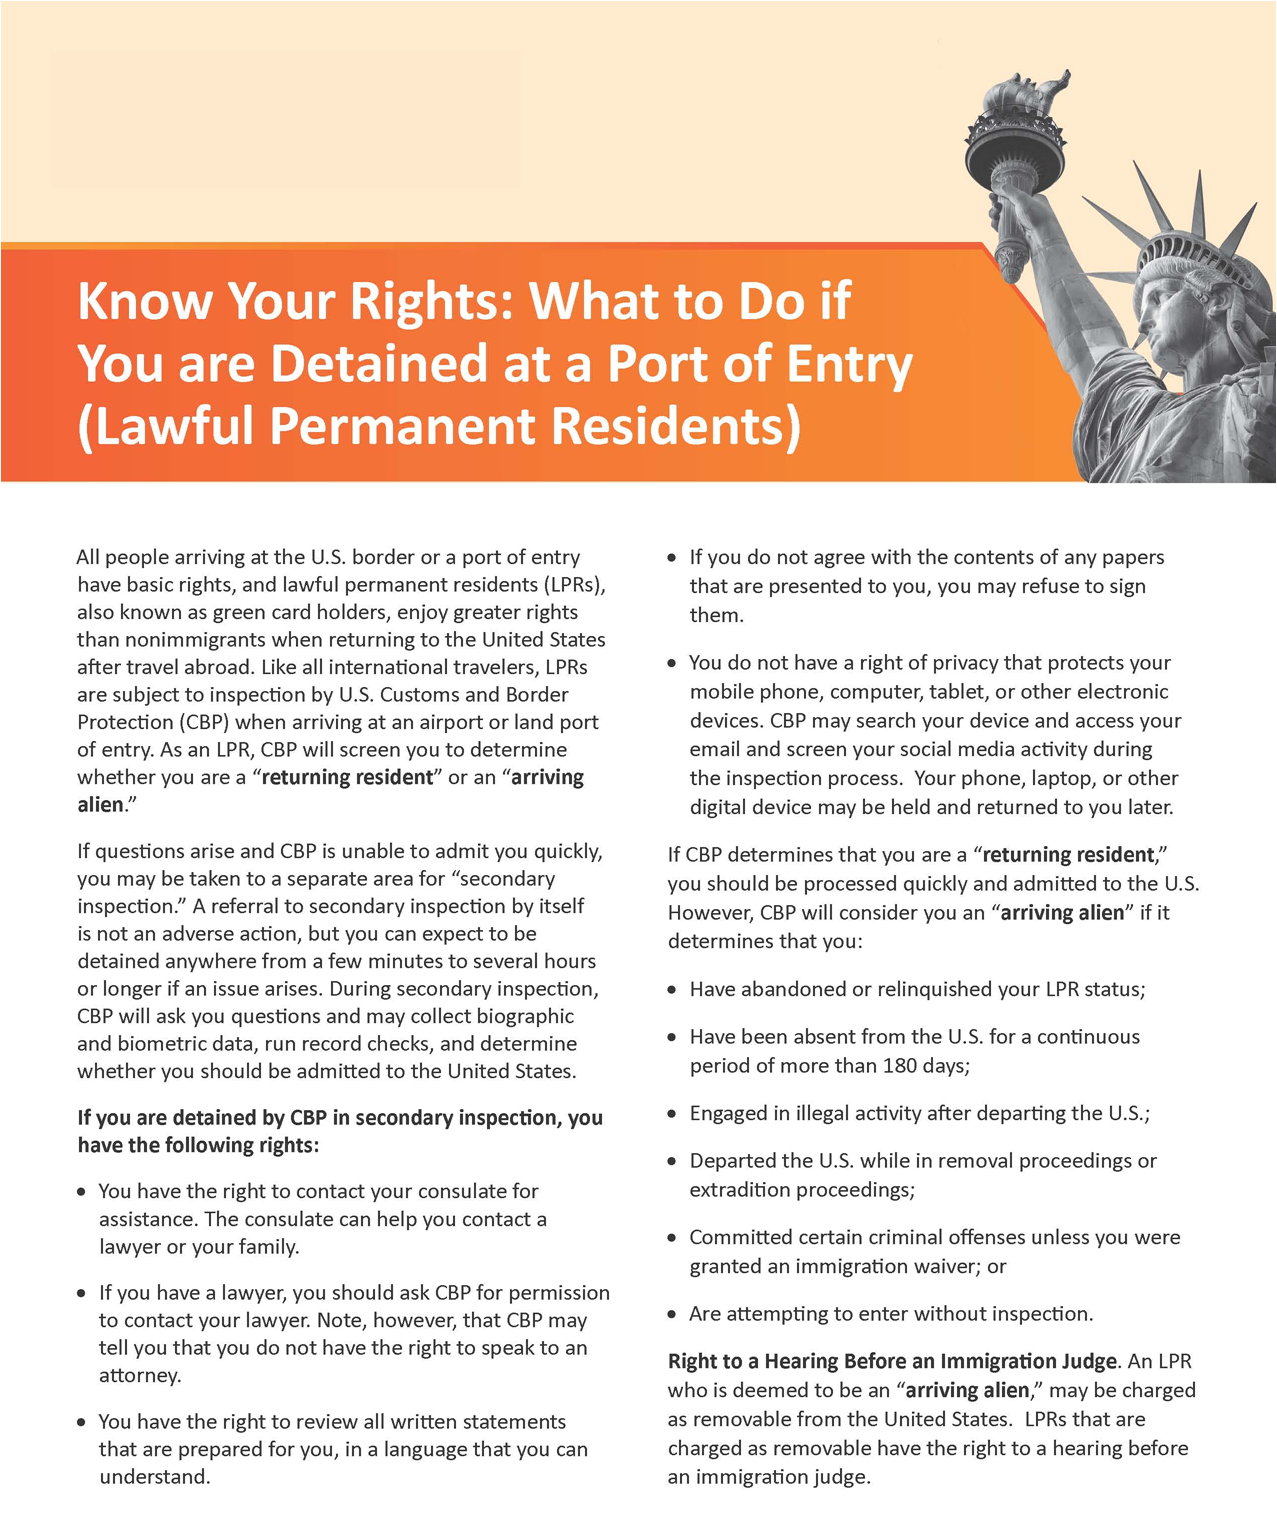 Know Your Rights: What to Do if You are Detained at a Port of Entry (Lawful Permanent Residents) 2